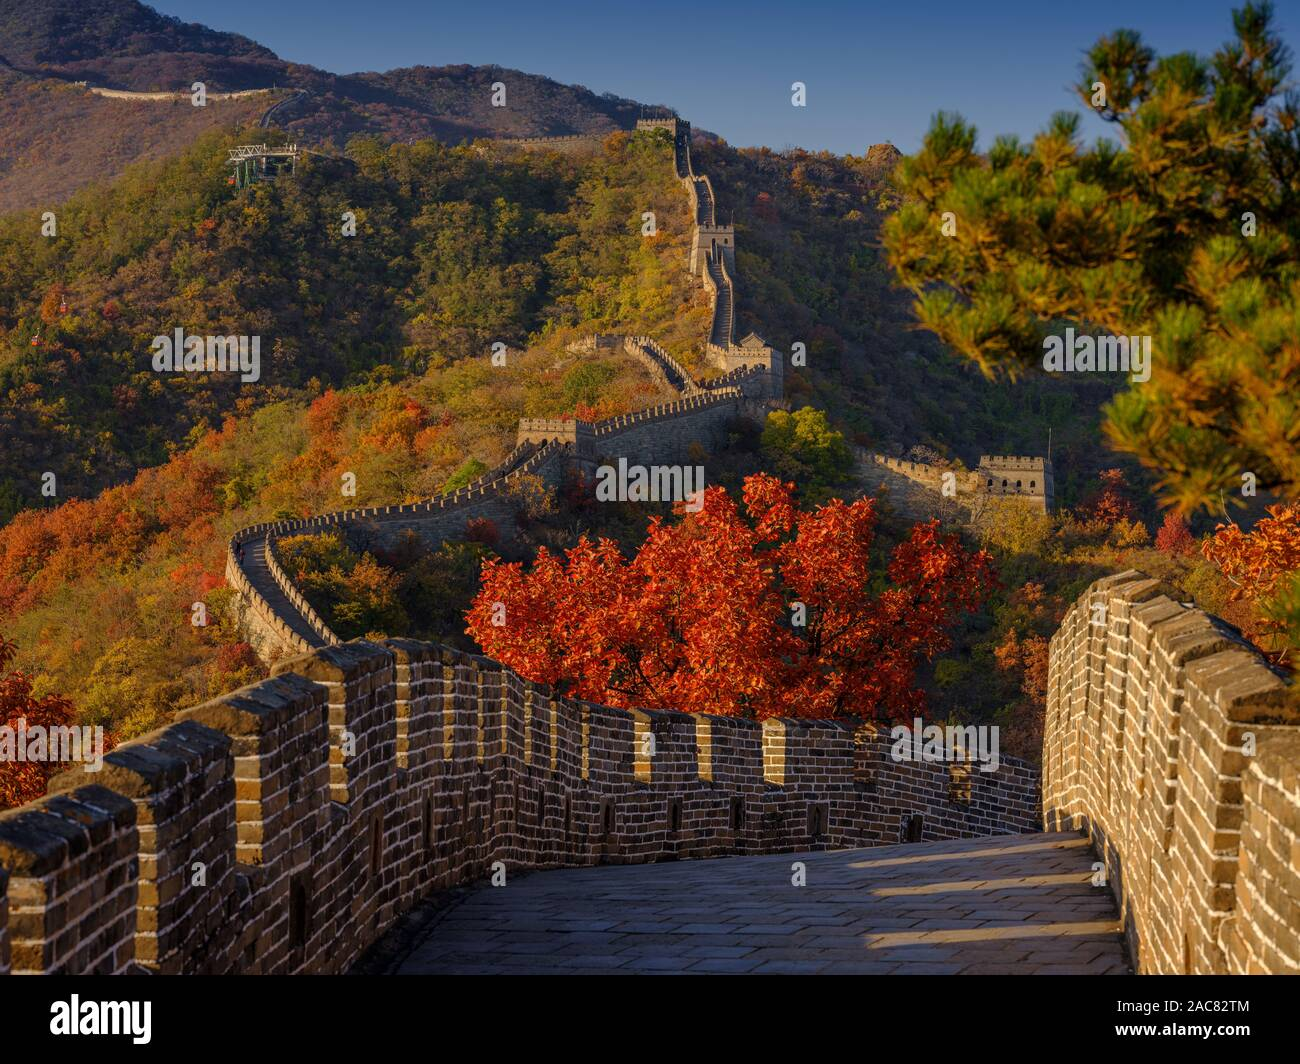 The Great Wall of China in autumn with nobody but red trees Stock Photo